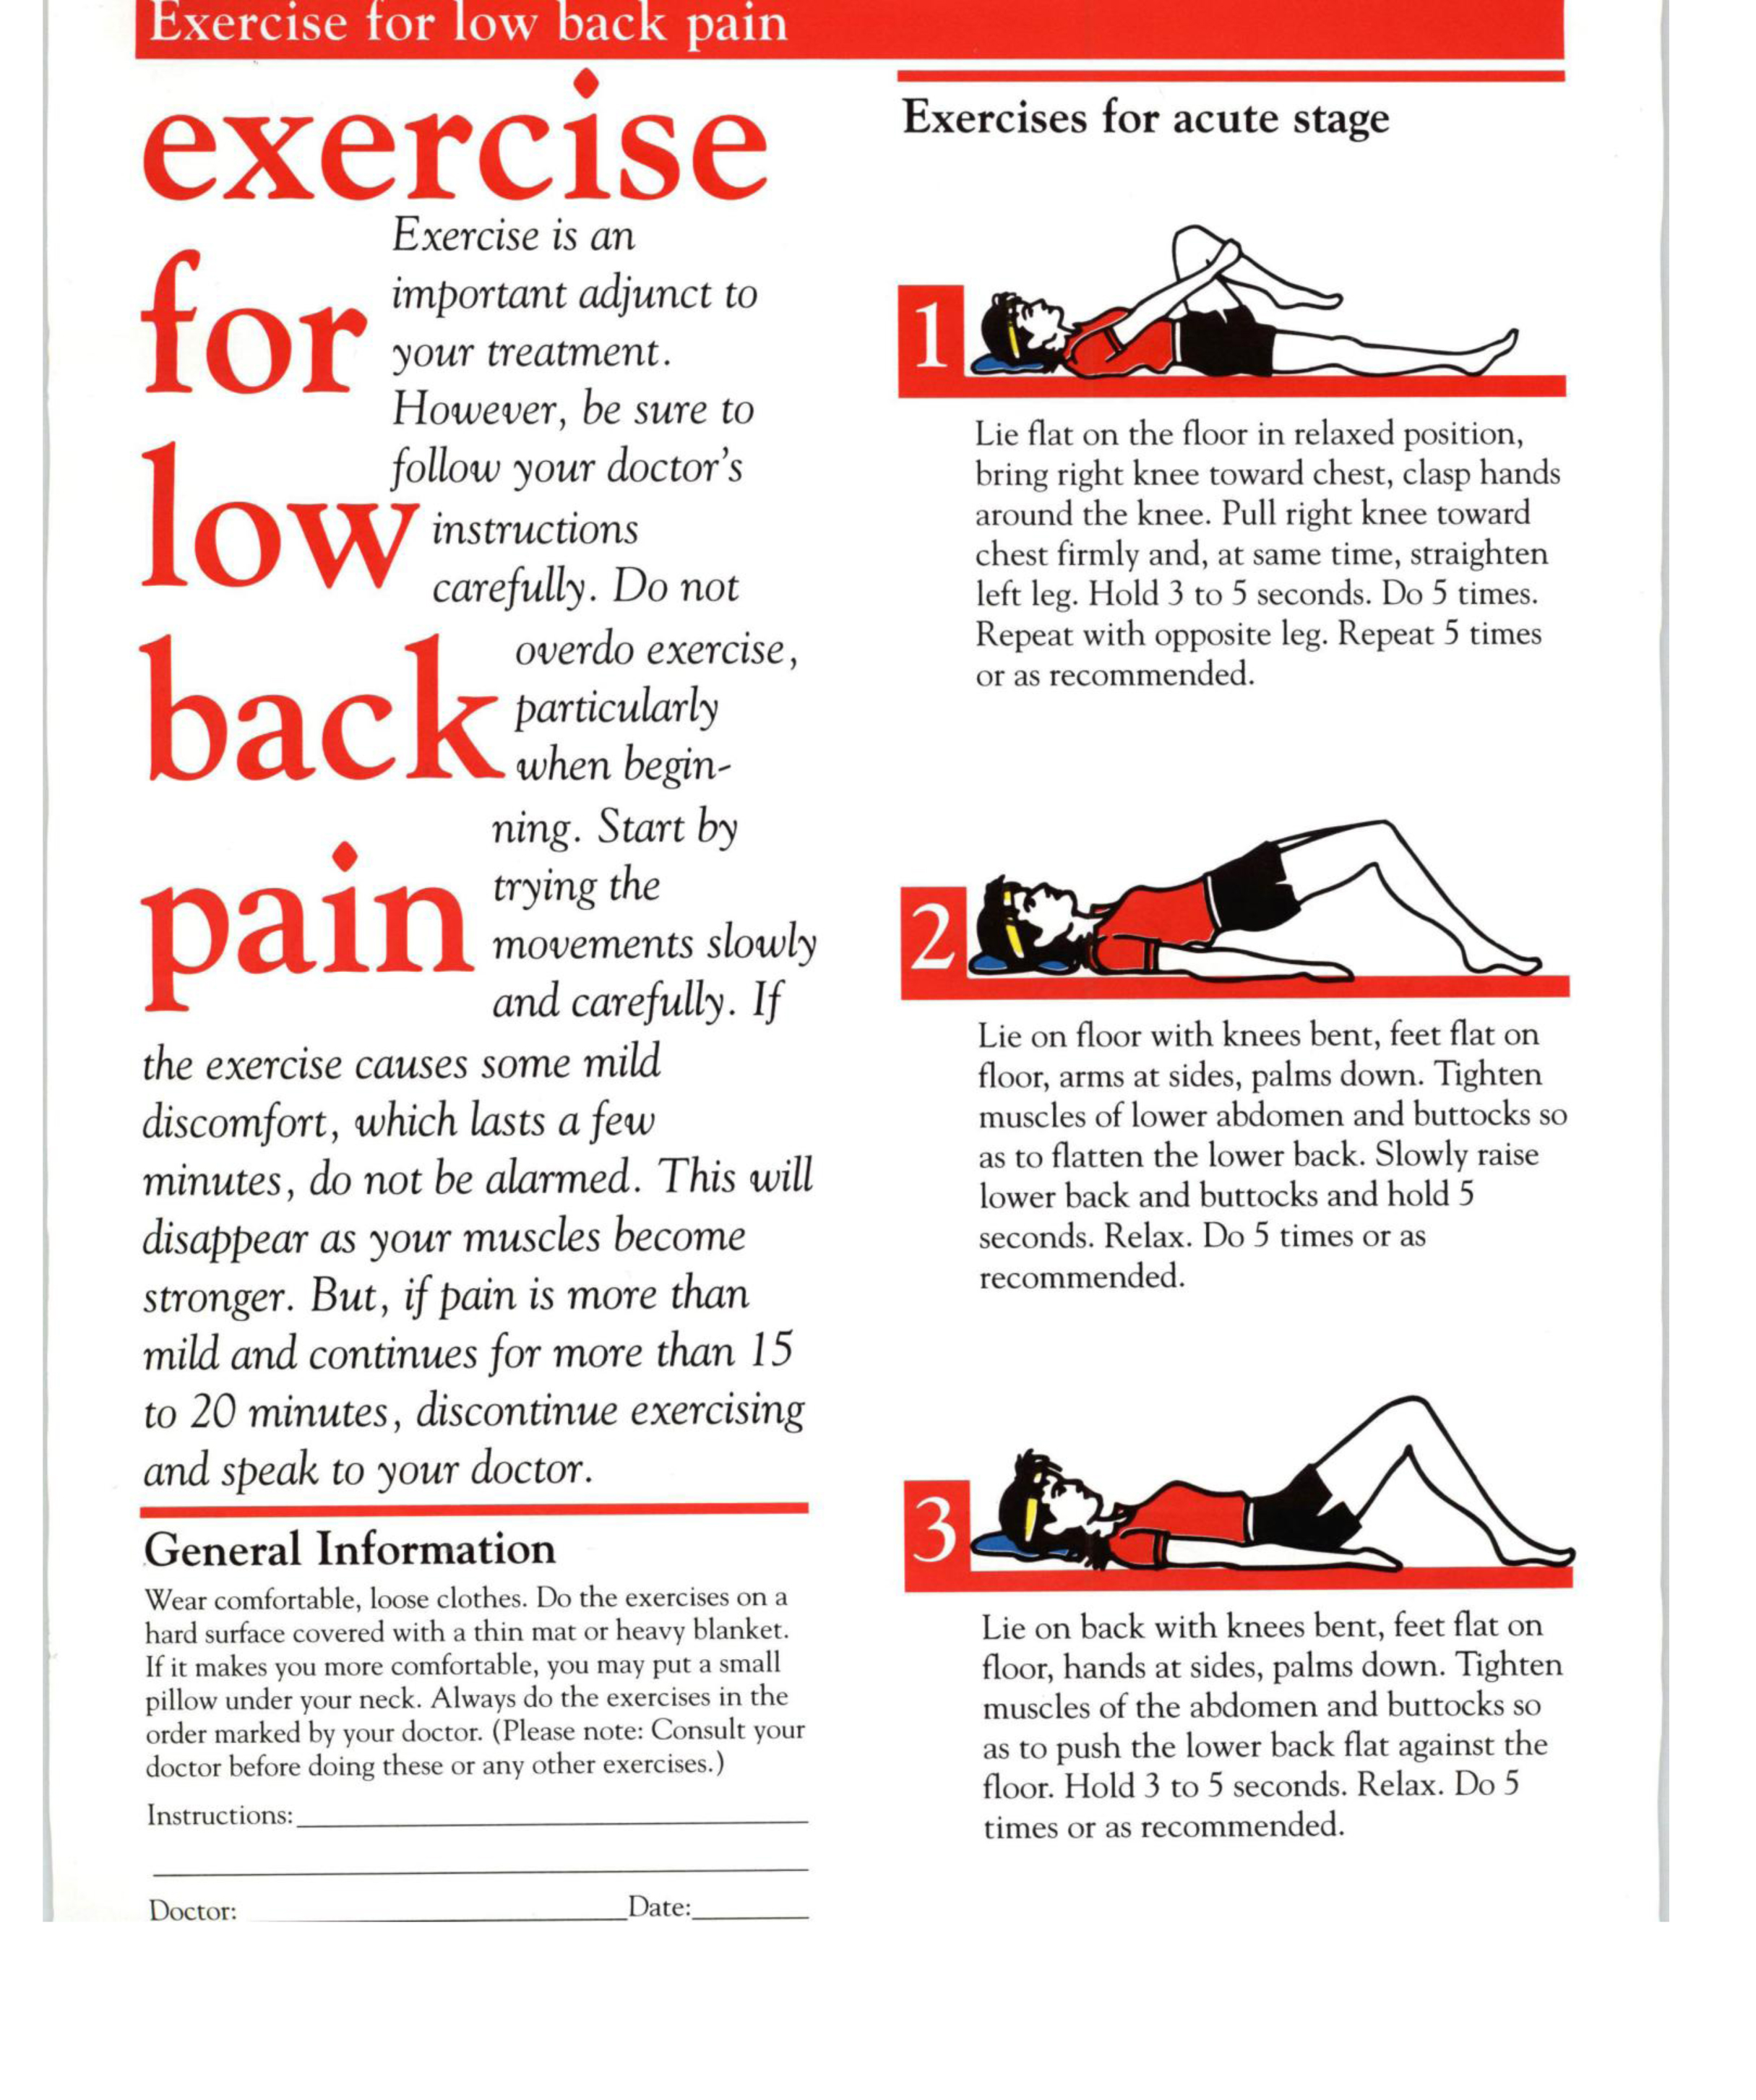 Exercise Program - Low Back Pain - Office Instructions - HEALTHCARE ...